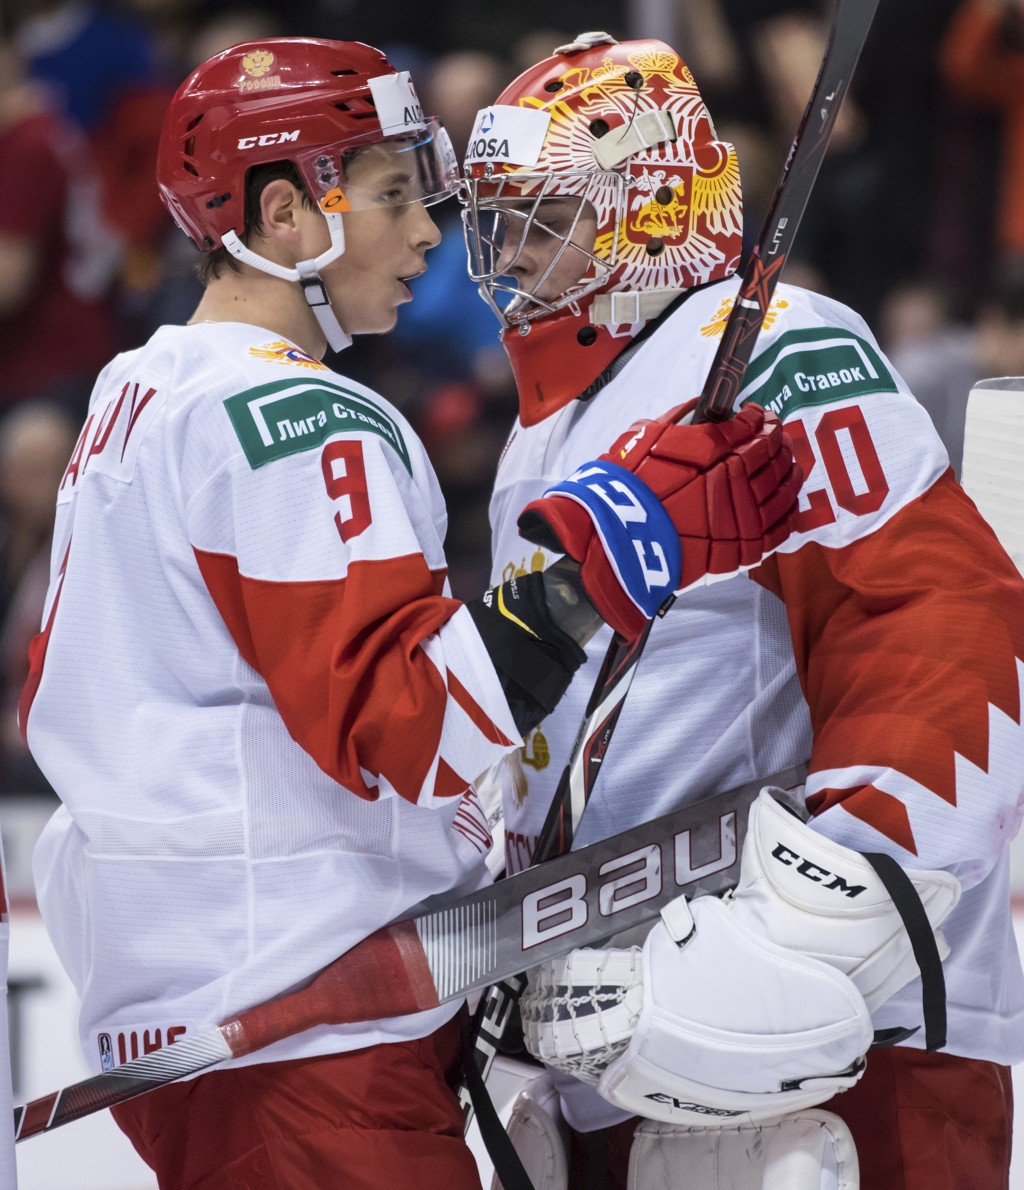 Russia's Artyom Galimov, left, and goalie Pyotr Kochetkov celebrate their win over the Czech Republic in IIHF world junior hockey championship game ac...